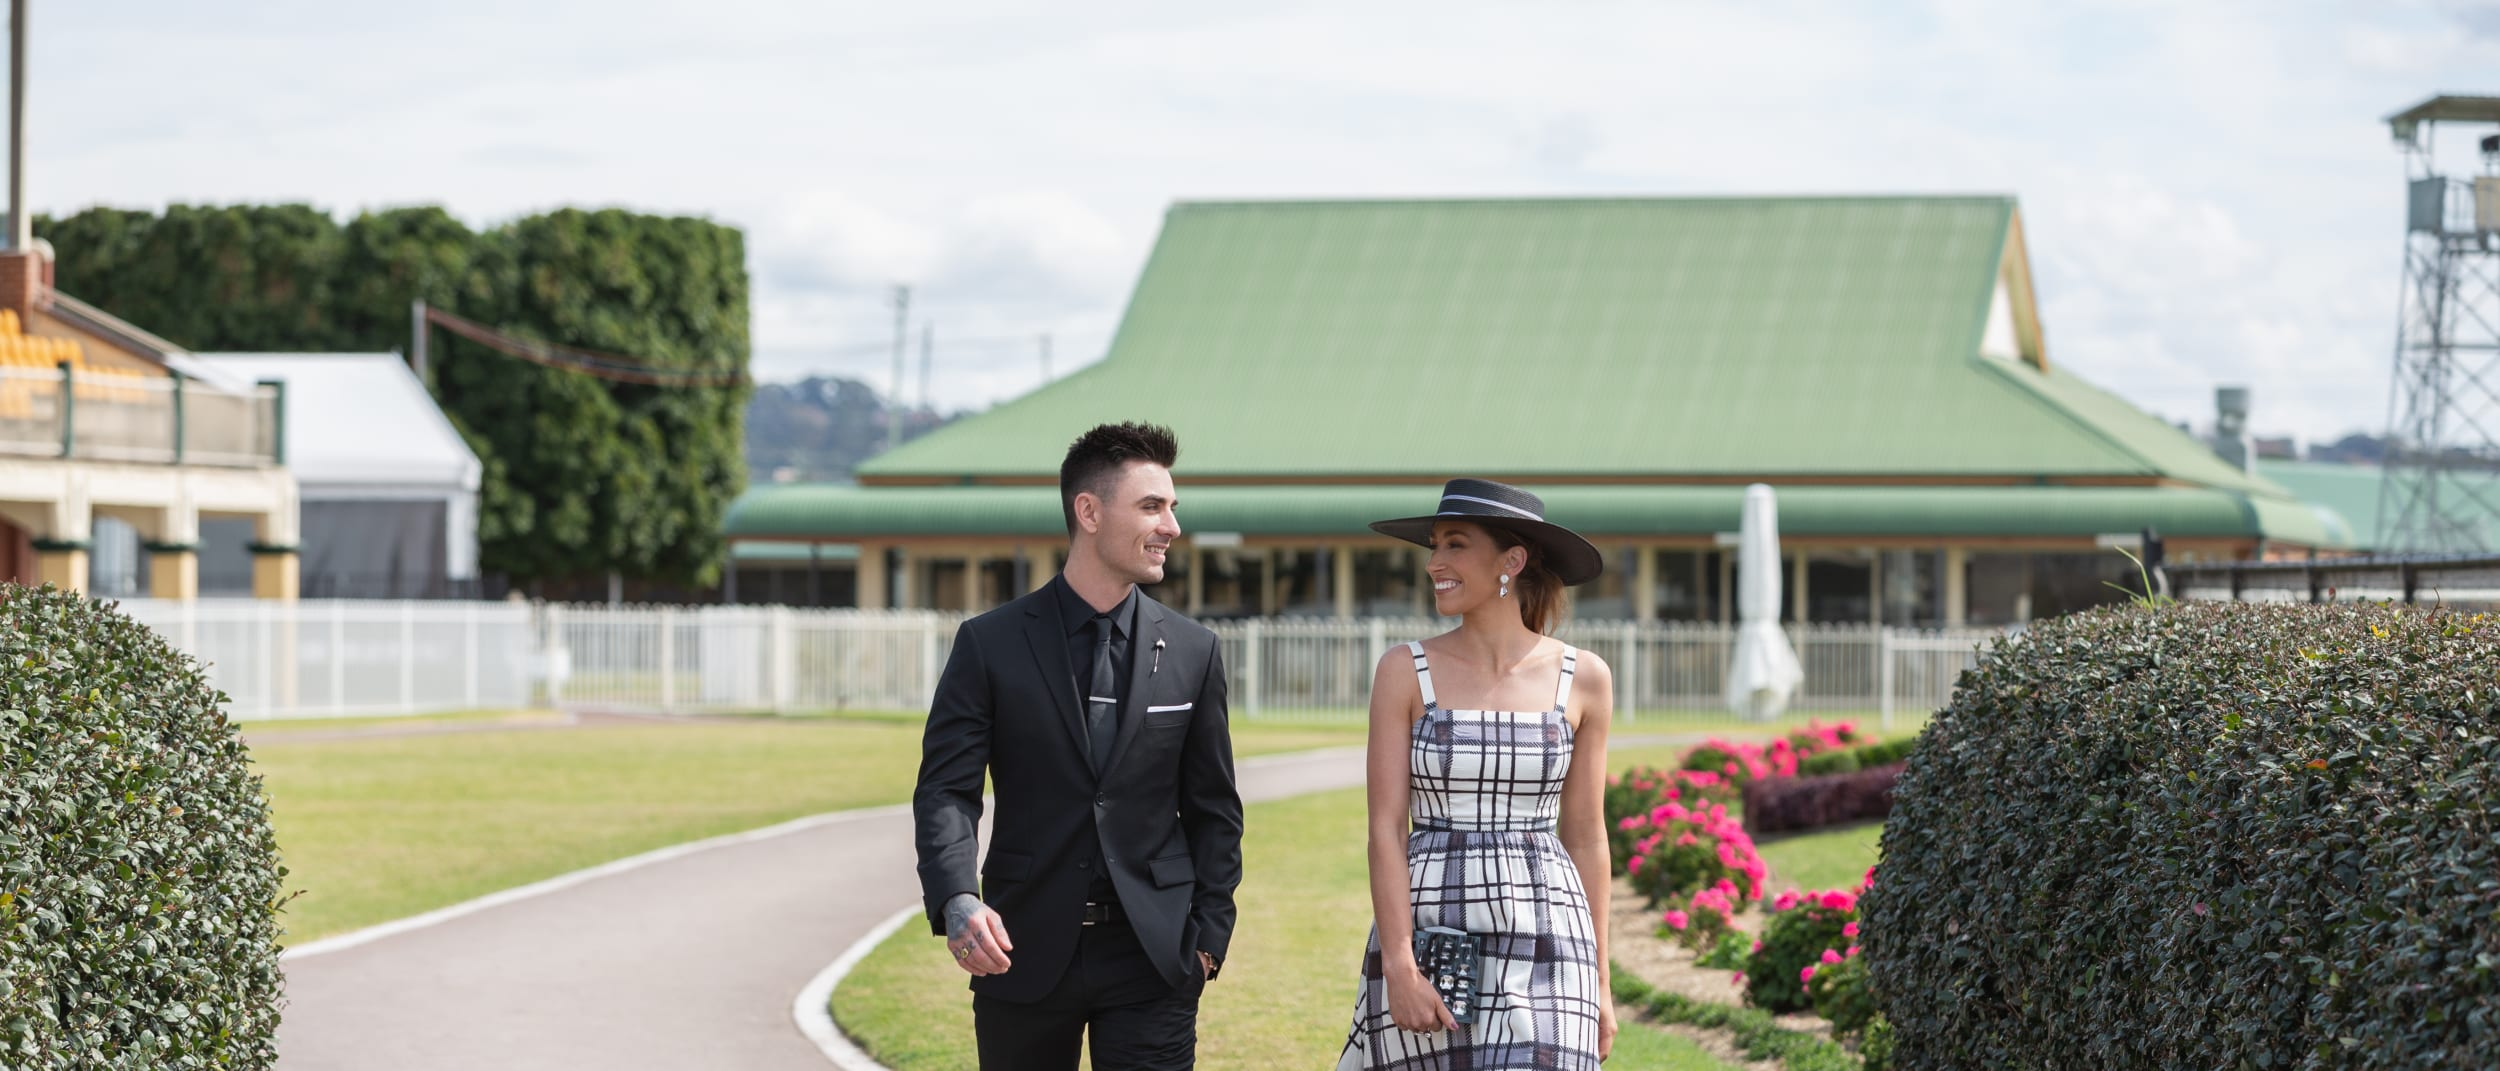 The trends worth reviving for spring racing this year